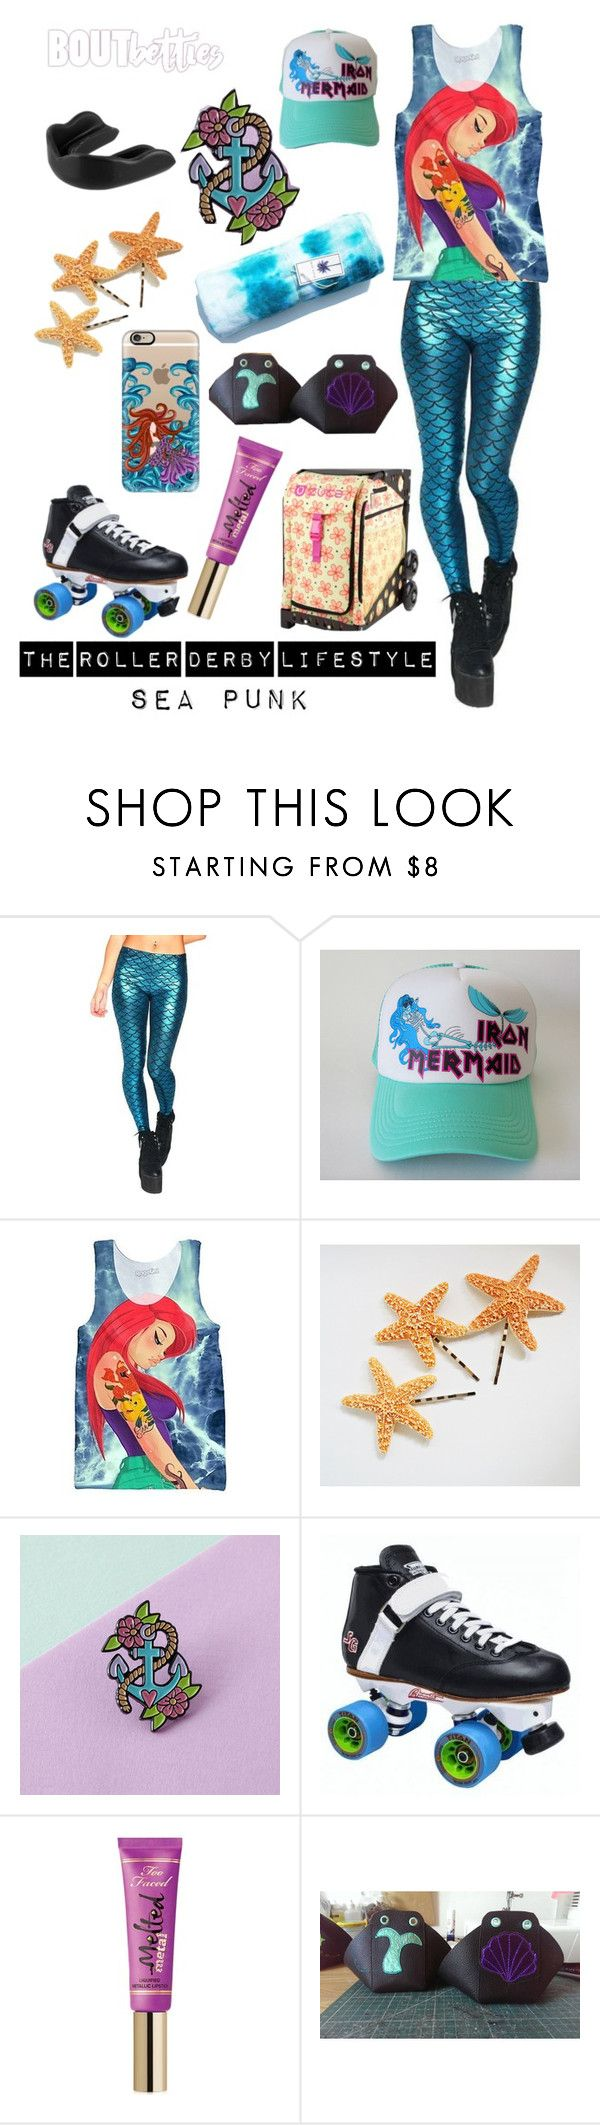 Roller derby fashion | Sea Punk by Bout Betties on Polyvore featuring Casetify, Too Faced Cosmetics, Skatanist